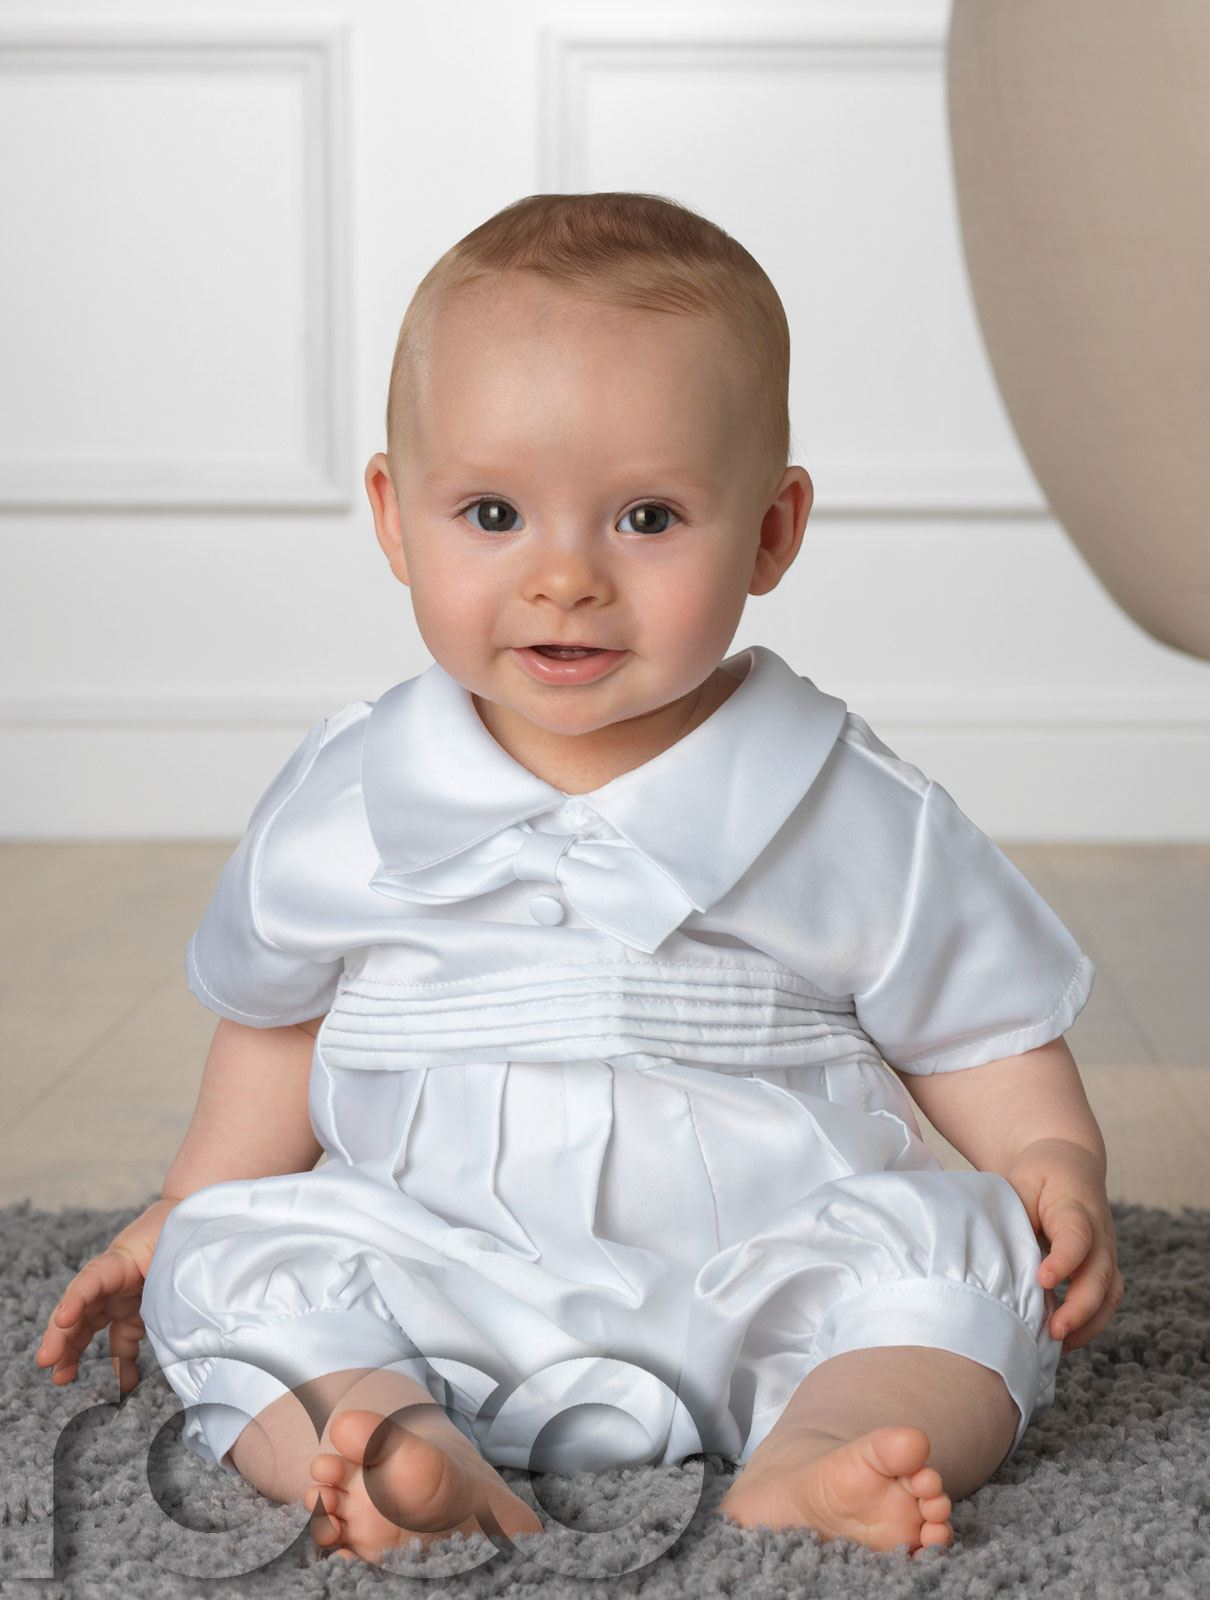 Baby Boys Christening Outfit White Romper Suit White u0026 Blue baby Rompers | eBay